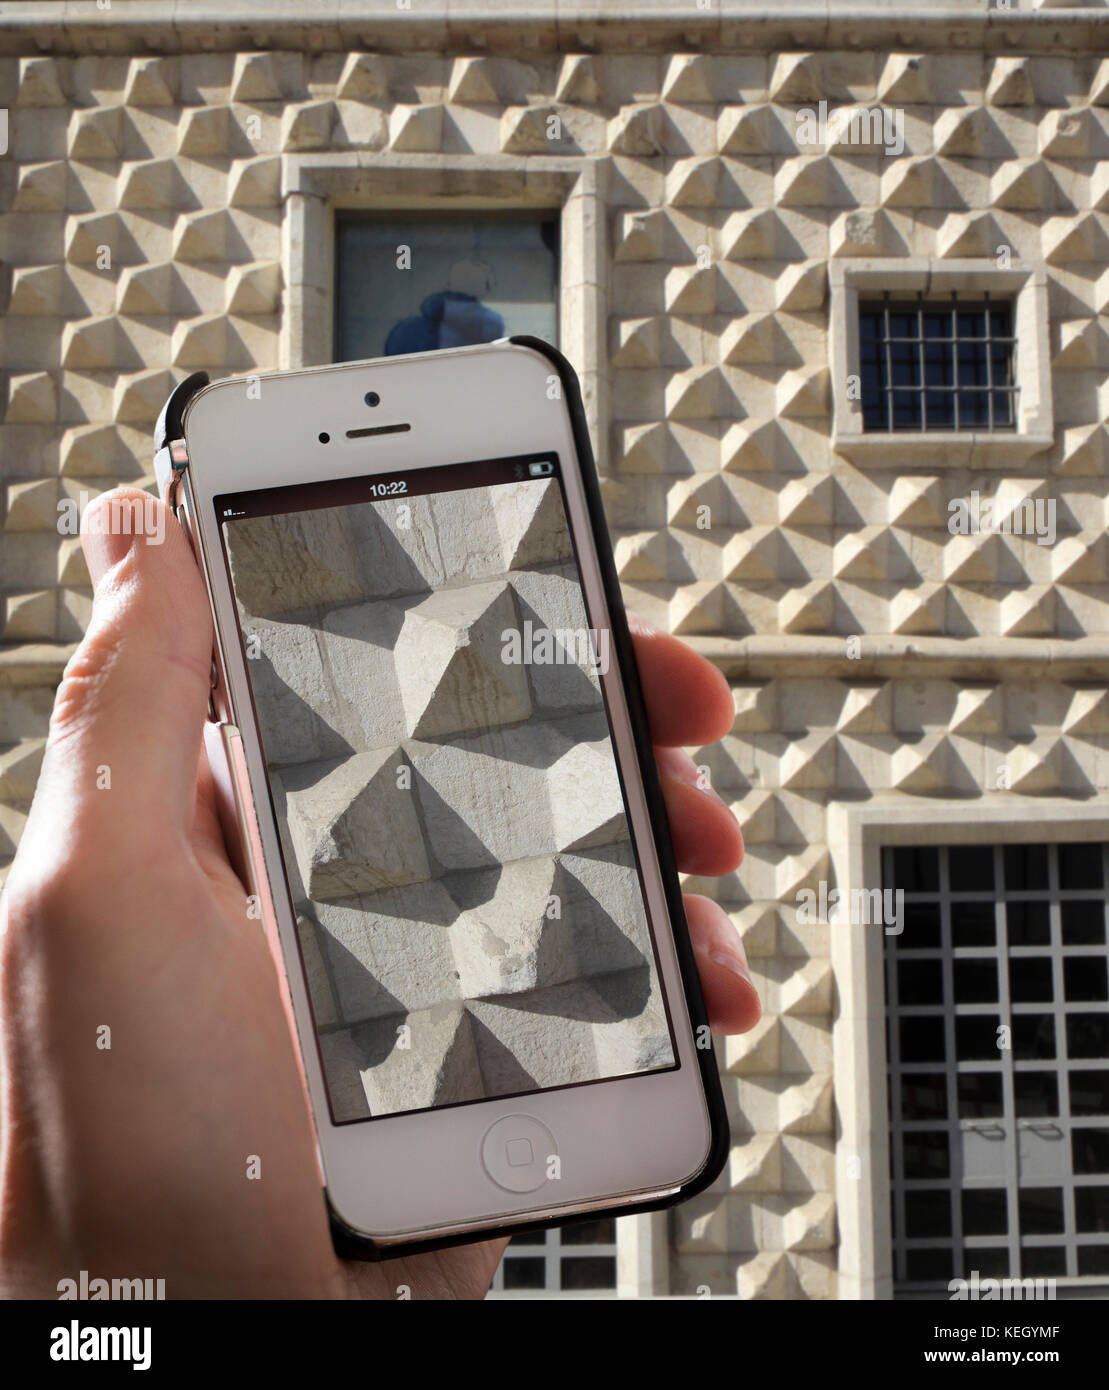 Casa dos Bicos (House of the Beaks/Spikes) in Lisbon. The house, built in the early 16th century in the Alfama neighbourhood, Stock Photo